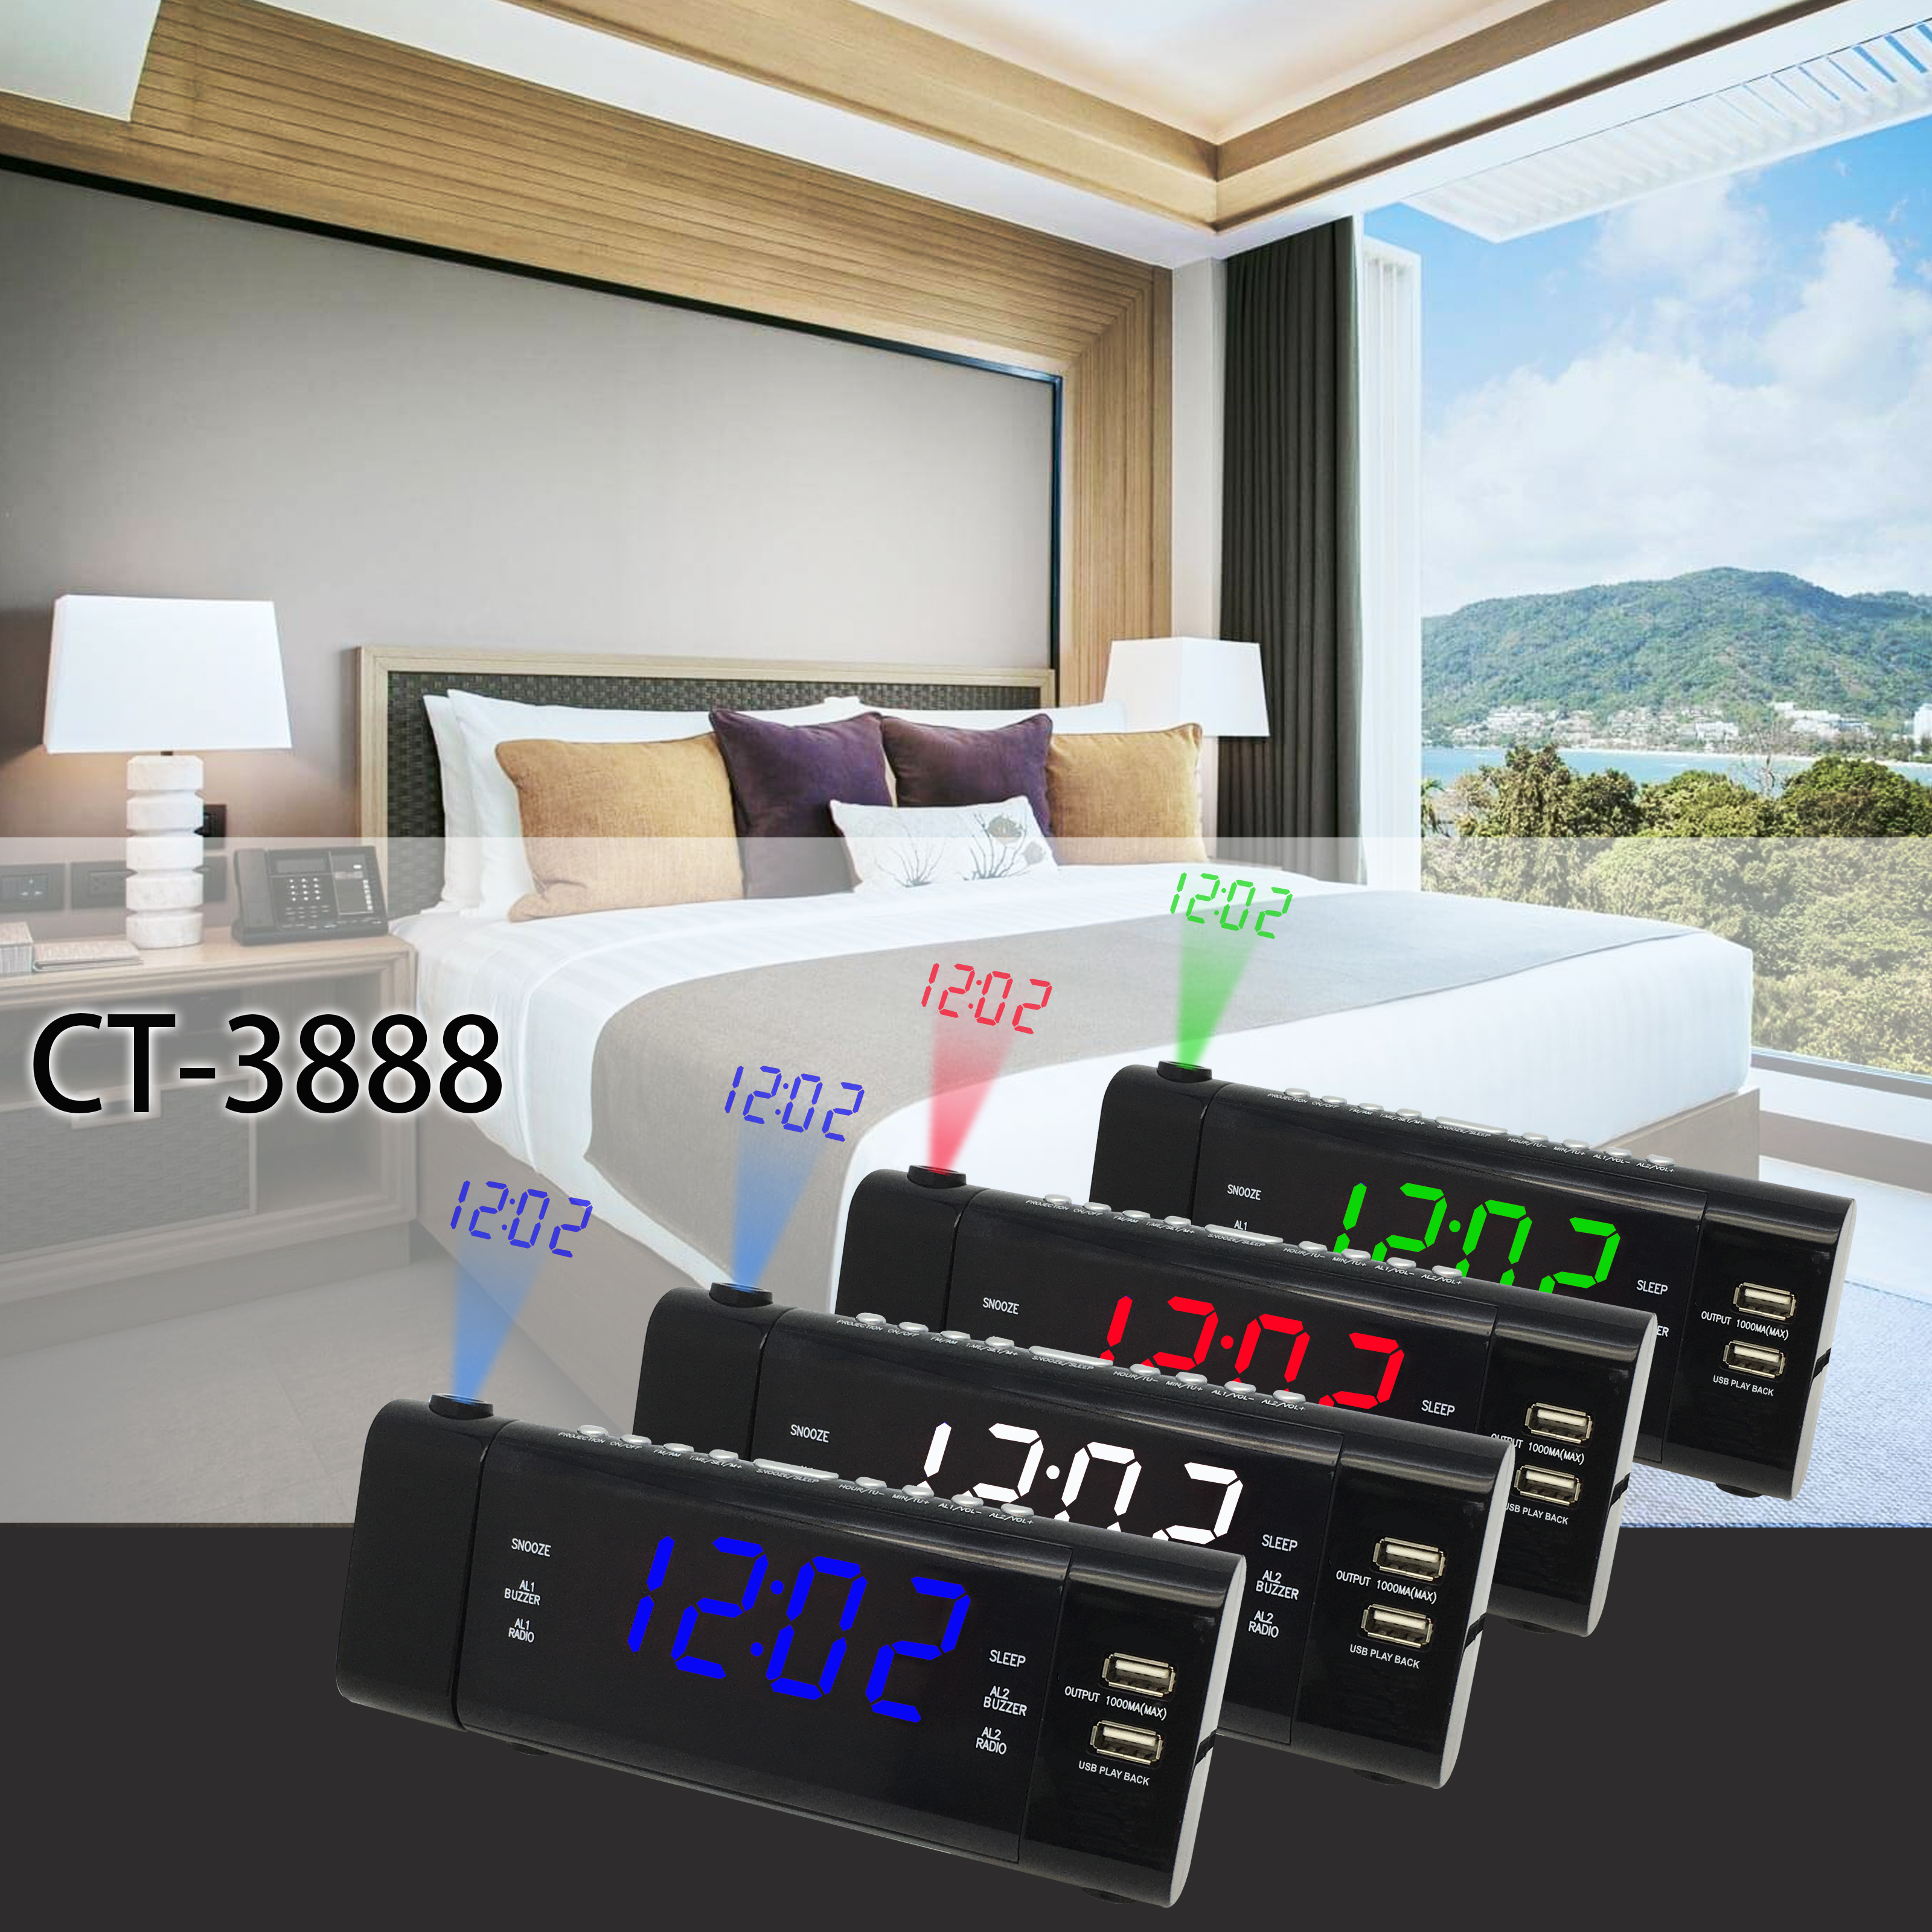 CT-3888 bedroom.jpg